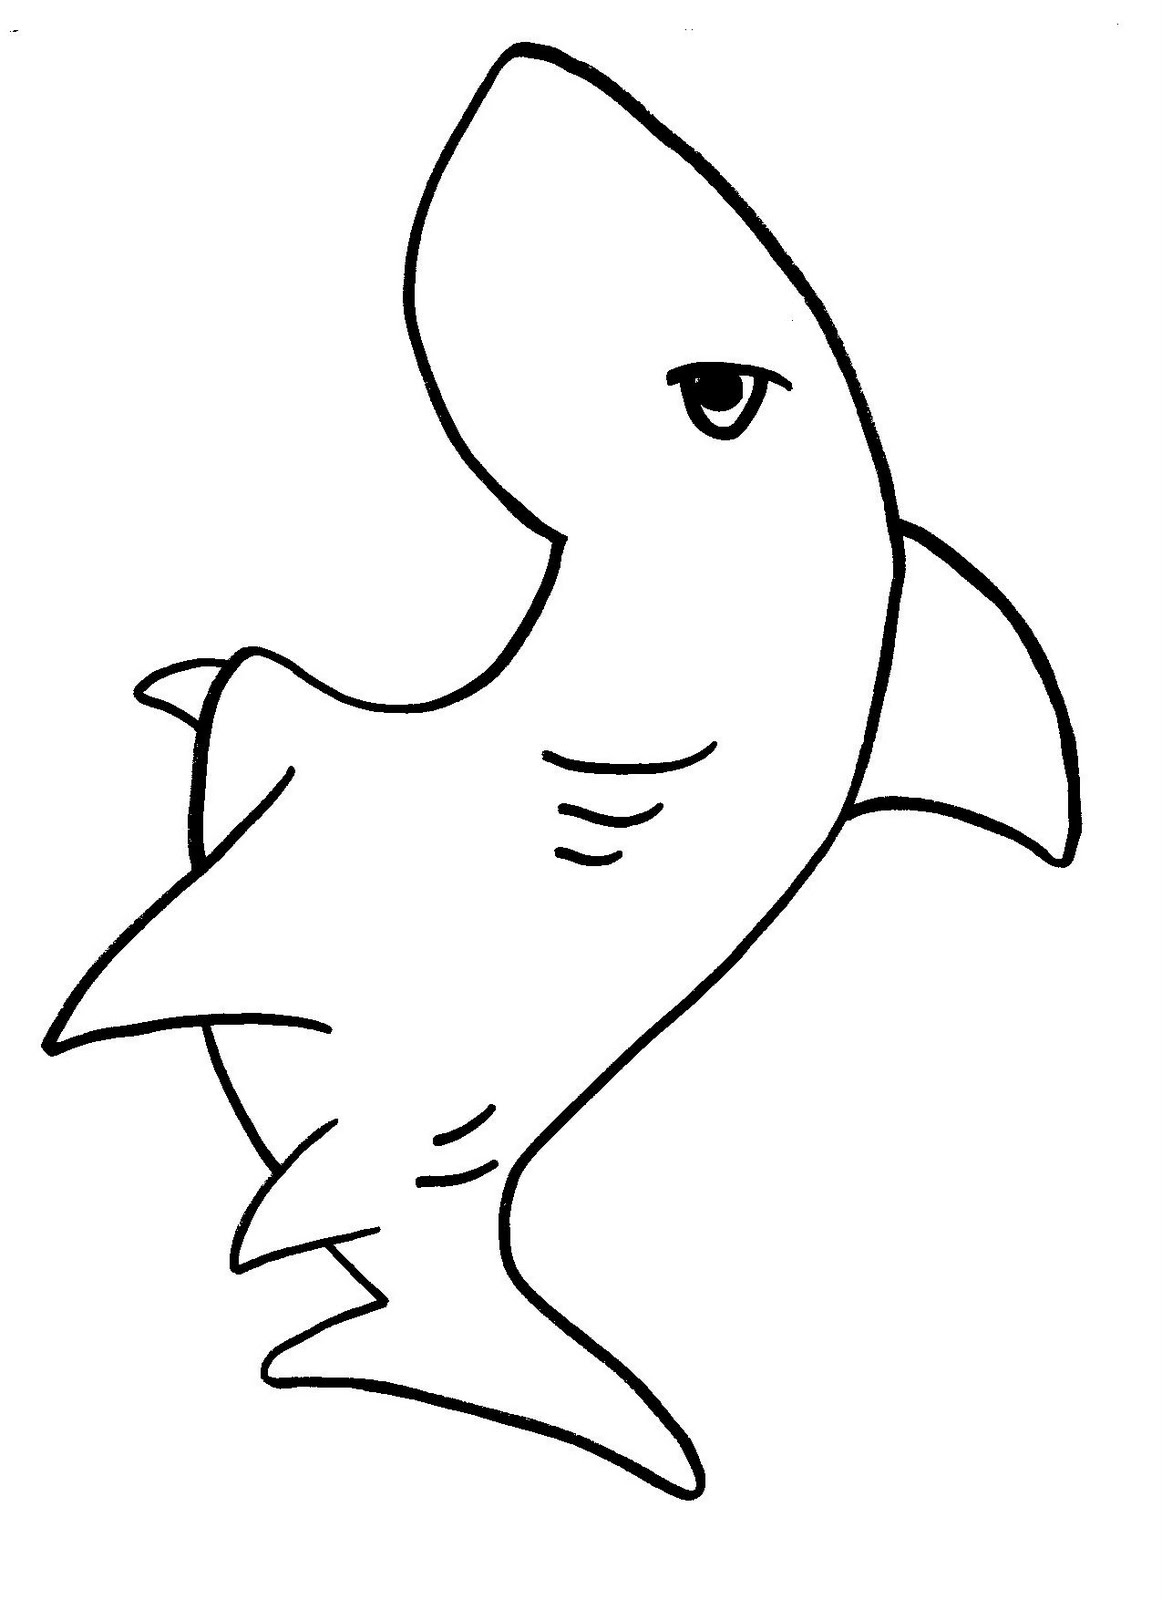 Shark Coloring Pages (11) Coloring Kids - Coloring Kids